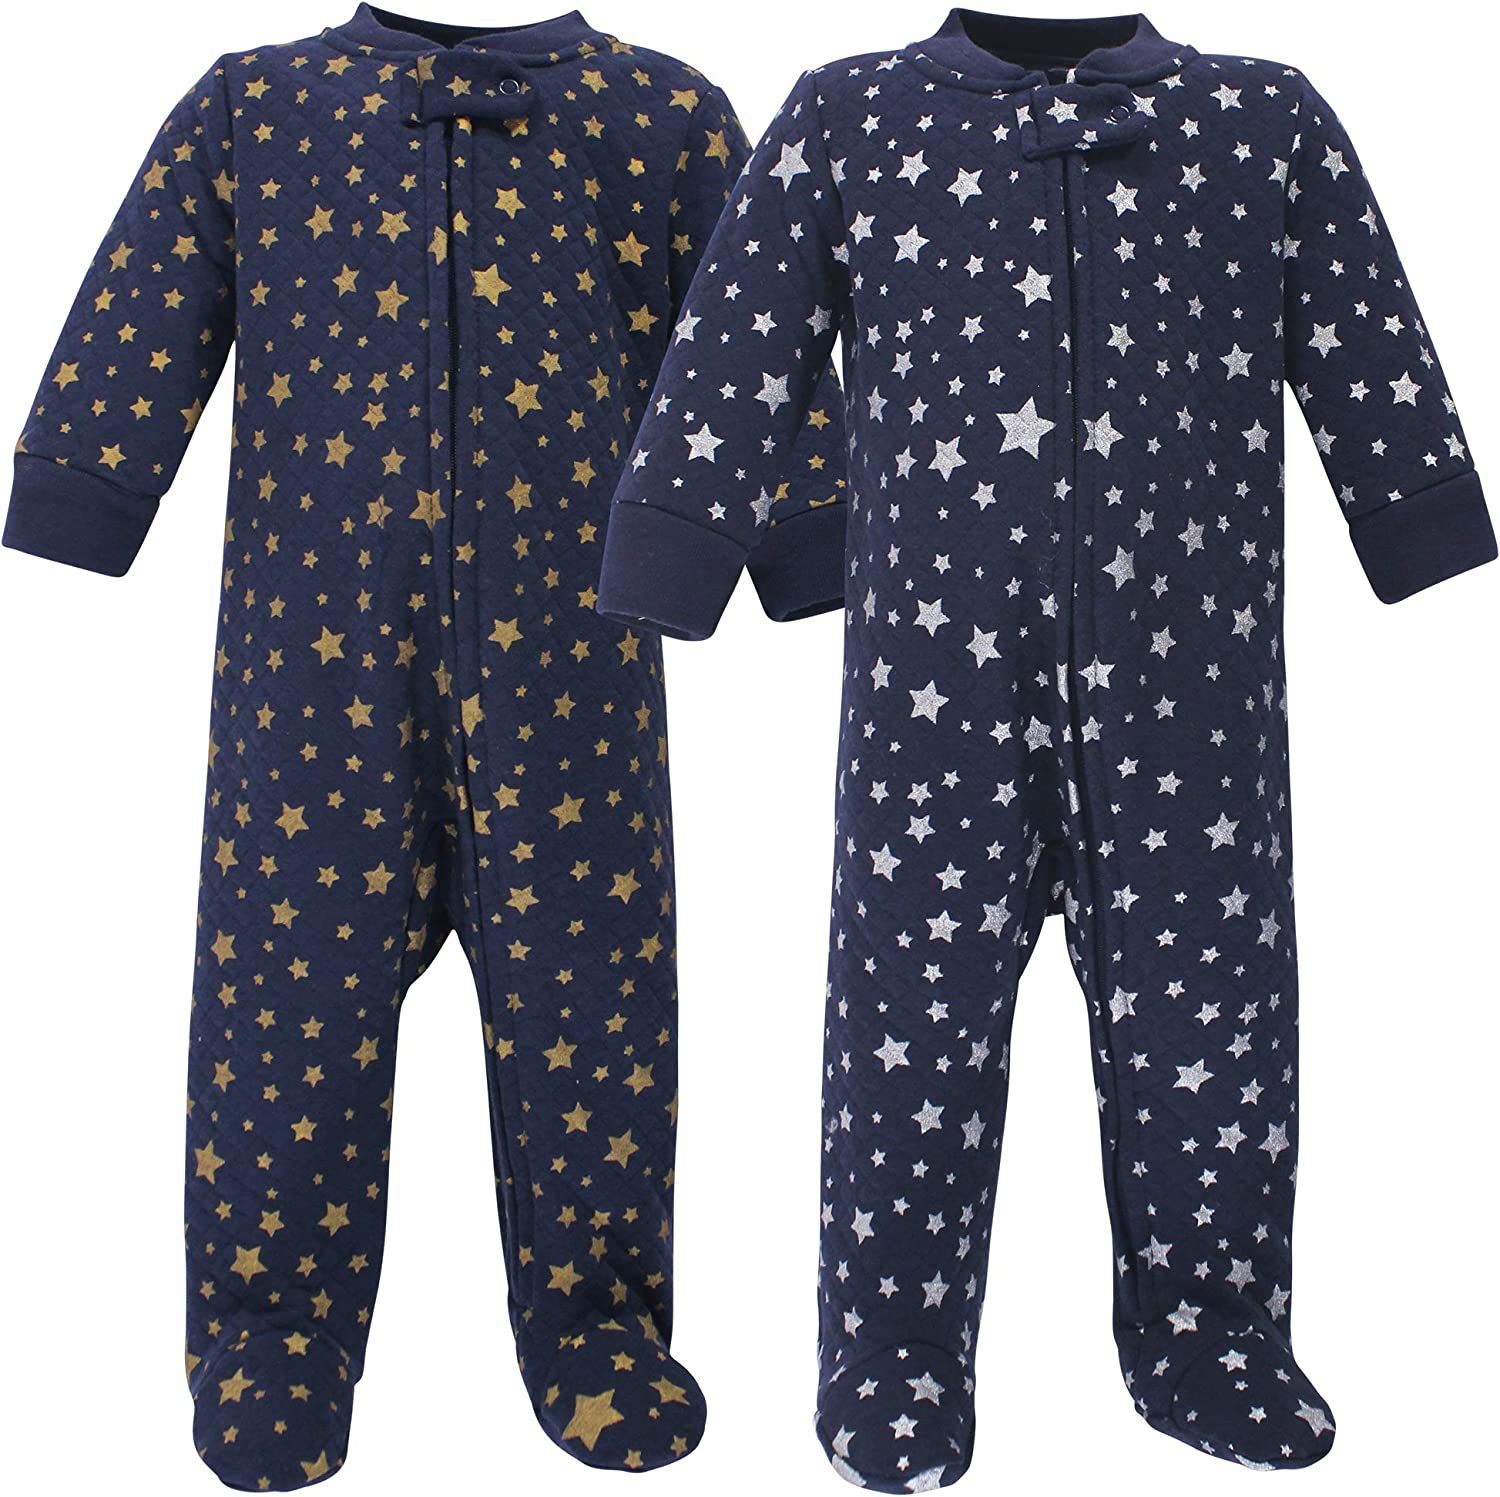 Hudson Baby Unisex Baby Premium Quilted Zipper Sleep and Play